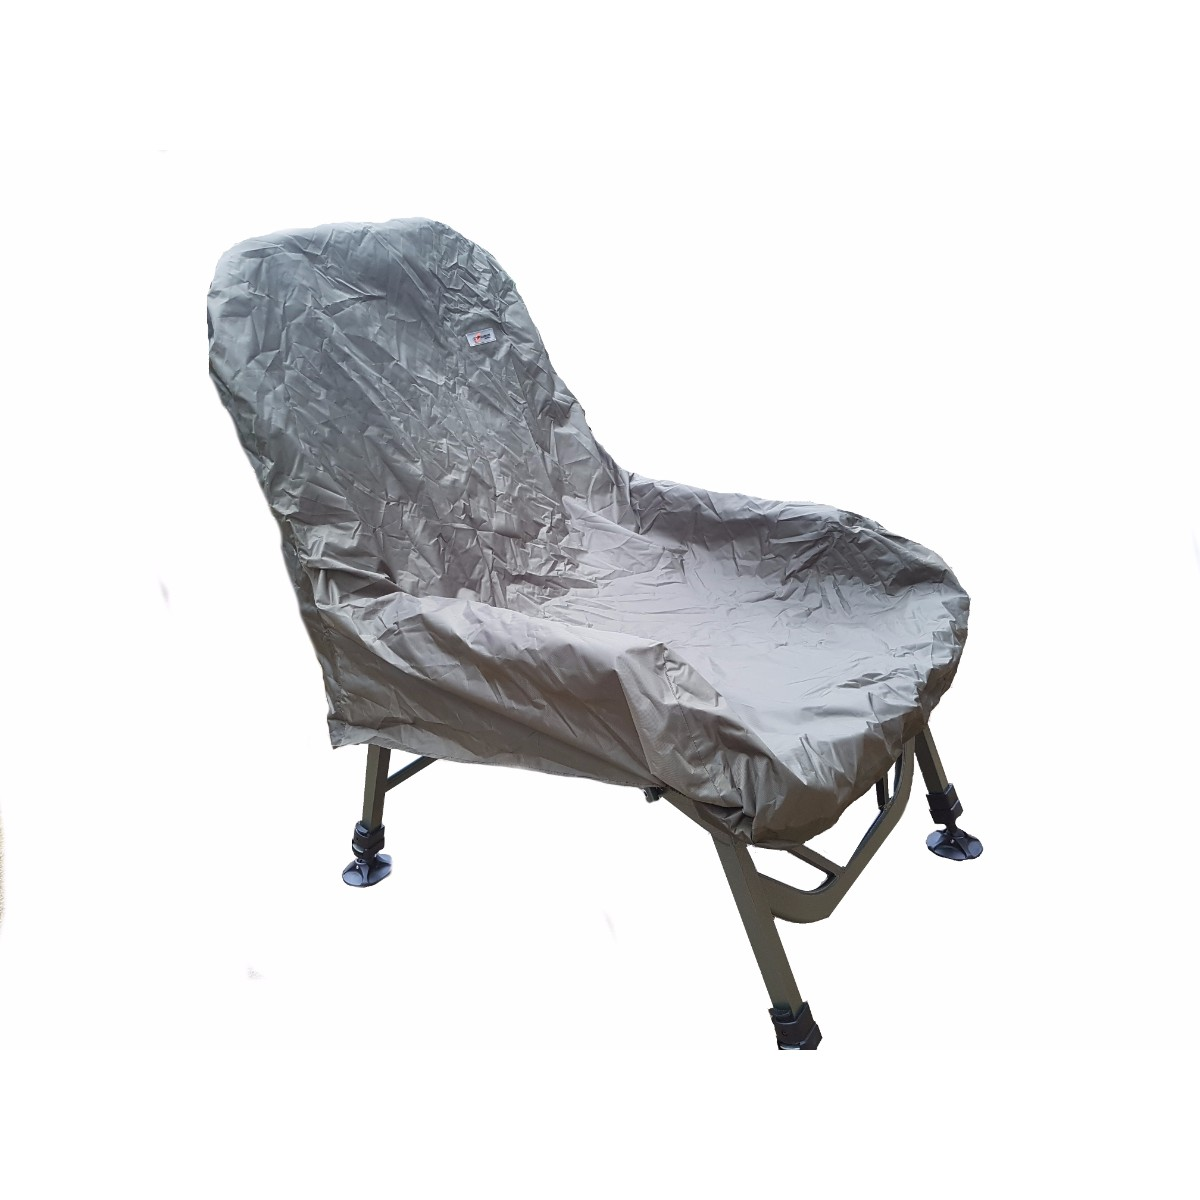 fishing chair with arms slipcovers nz cyprinus lazy boy hi leg arm seat rrp 139